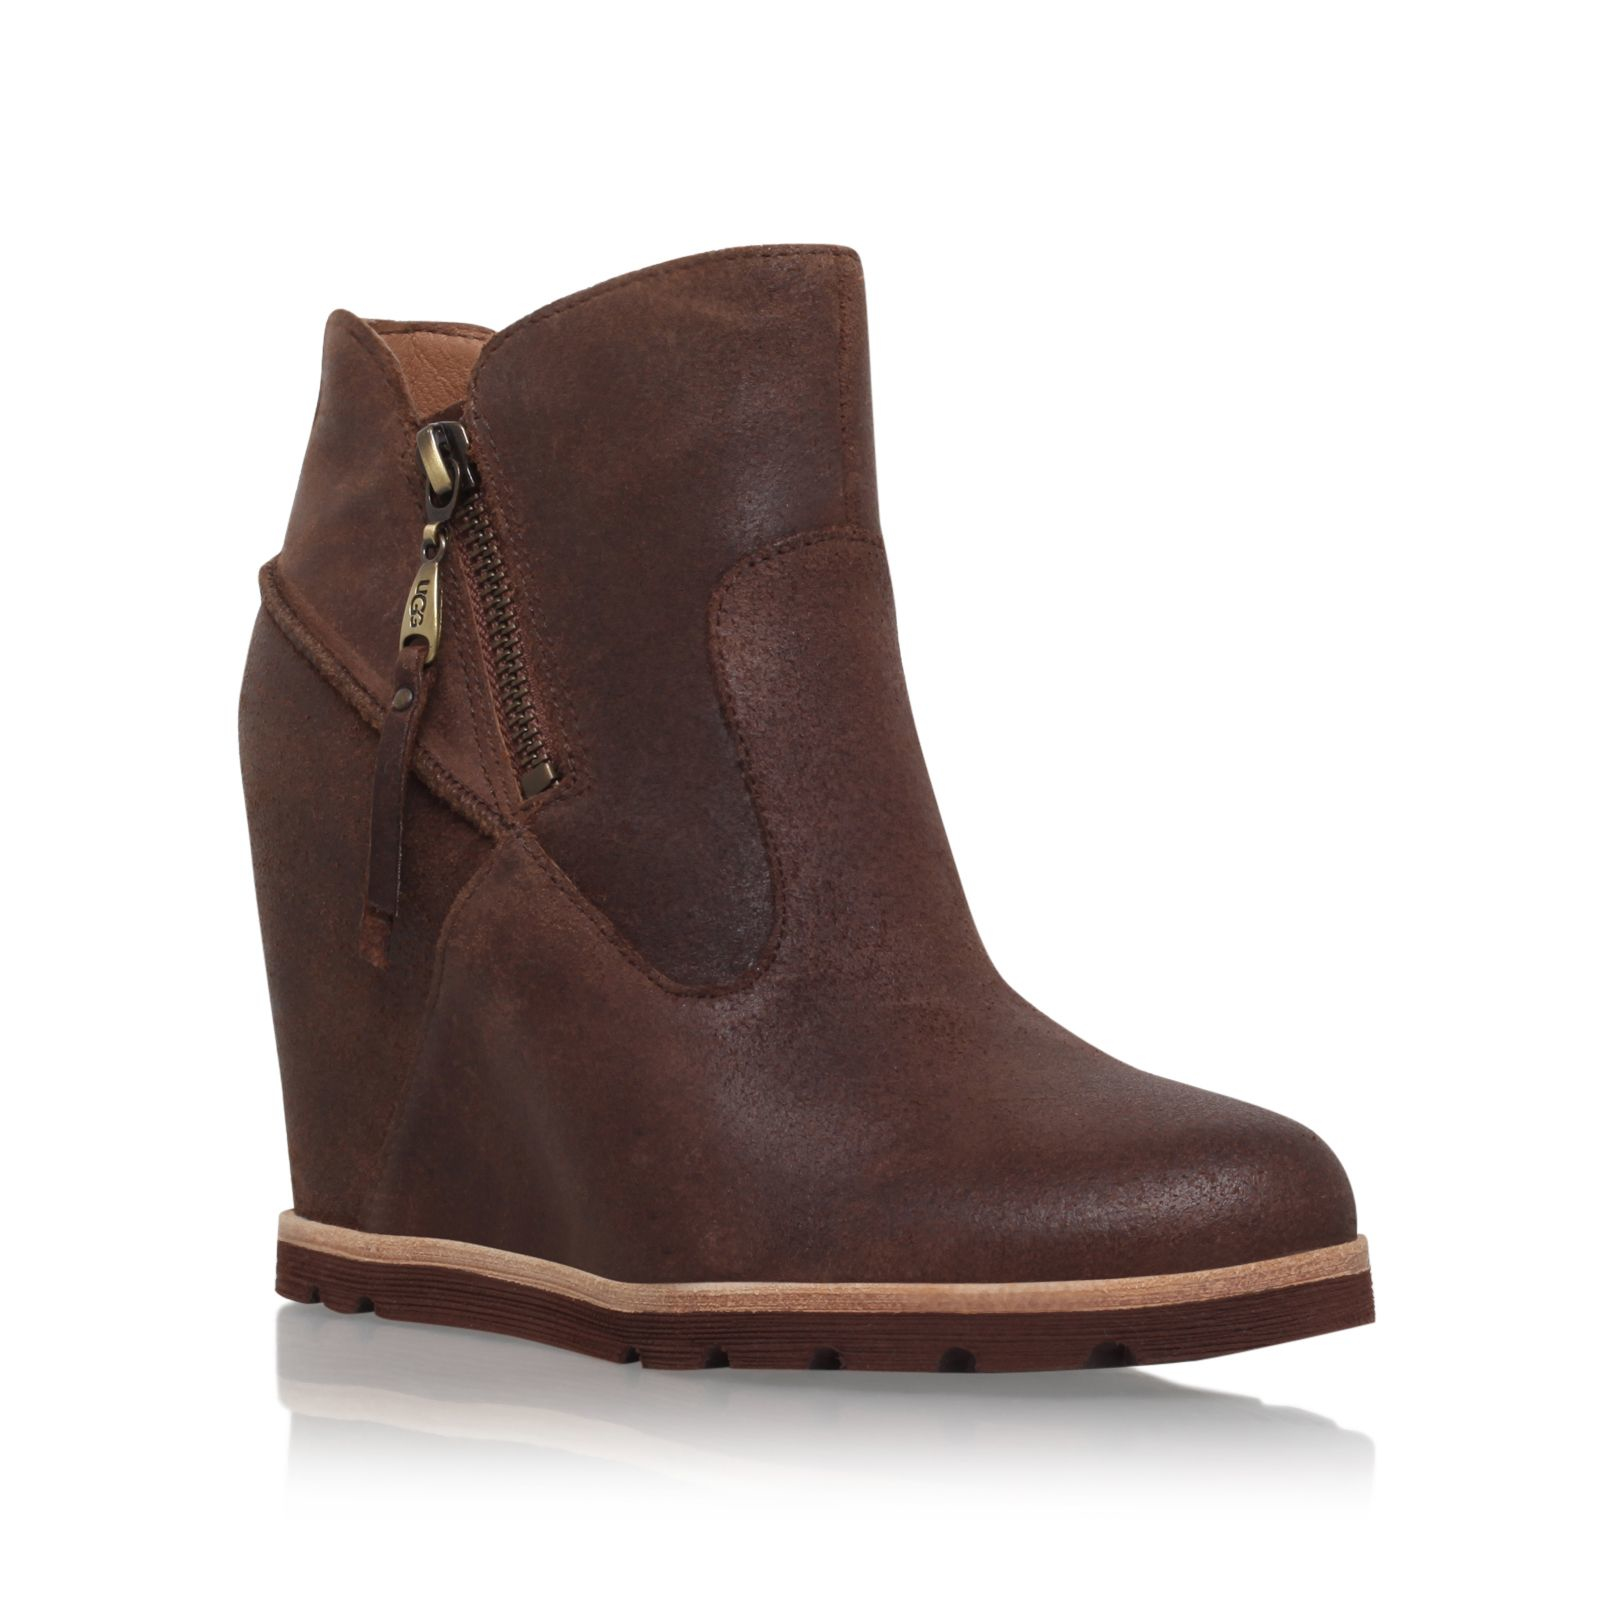 Ugg Myrna Wedge Heel Ankle Boots in Brown | Lyst